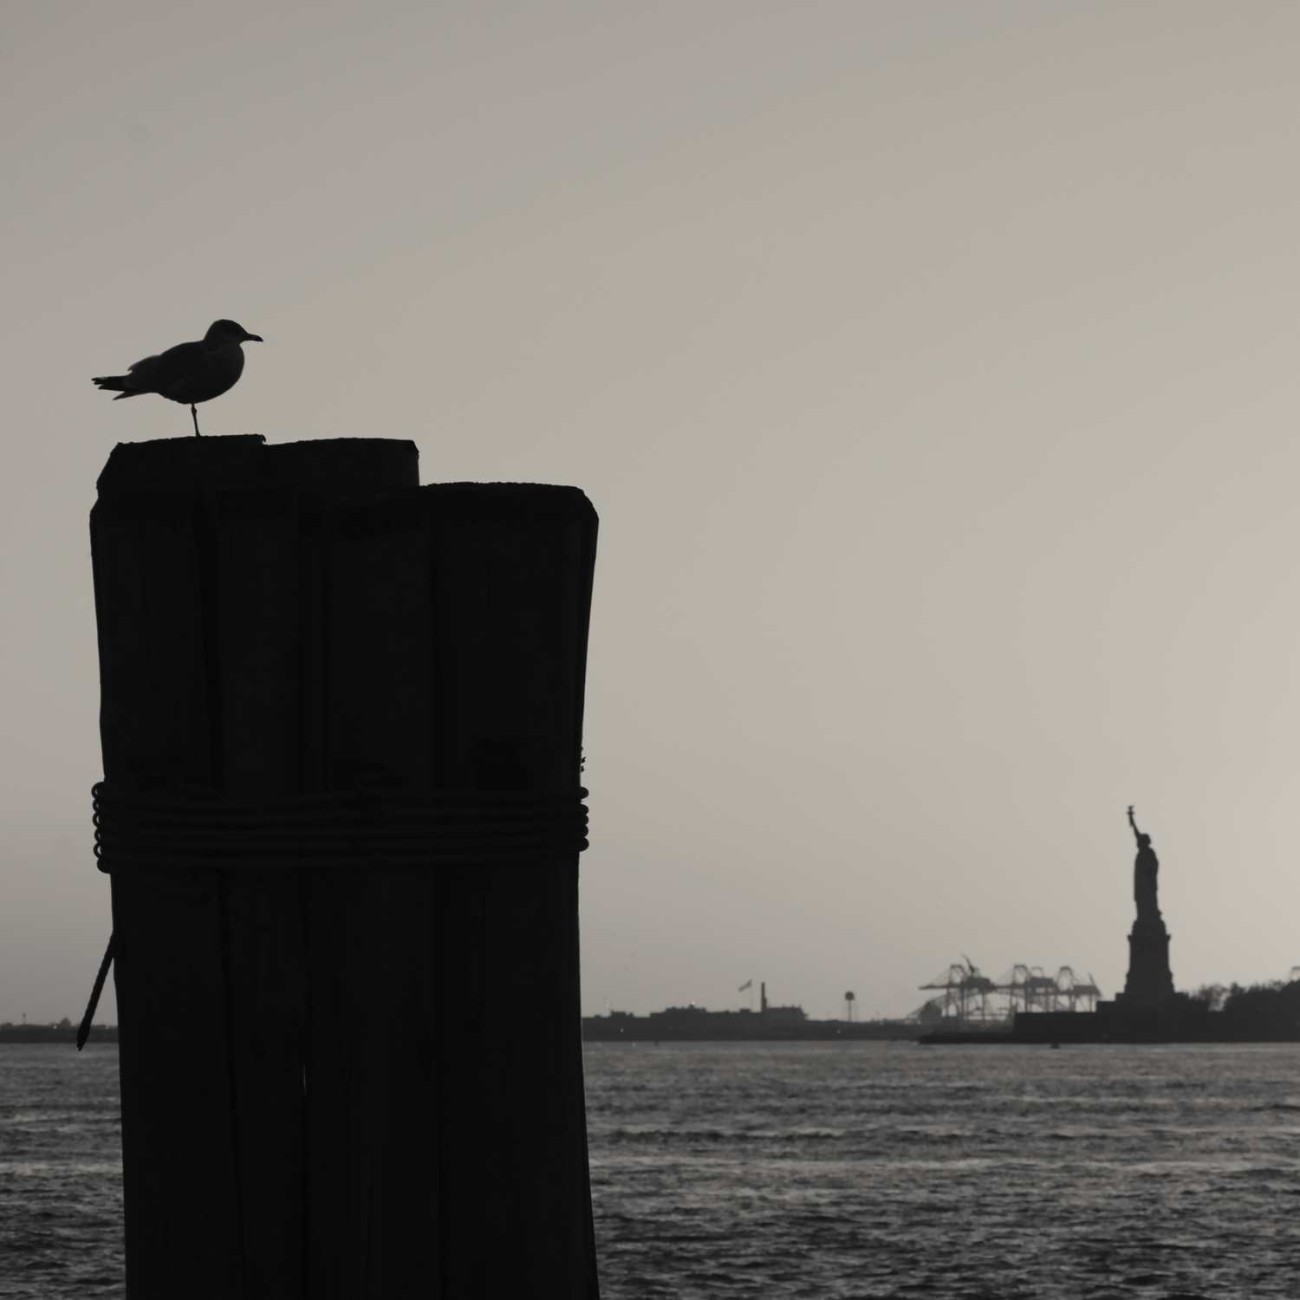 Gull on dock piling, New York Harbor, 2010